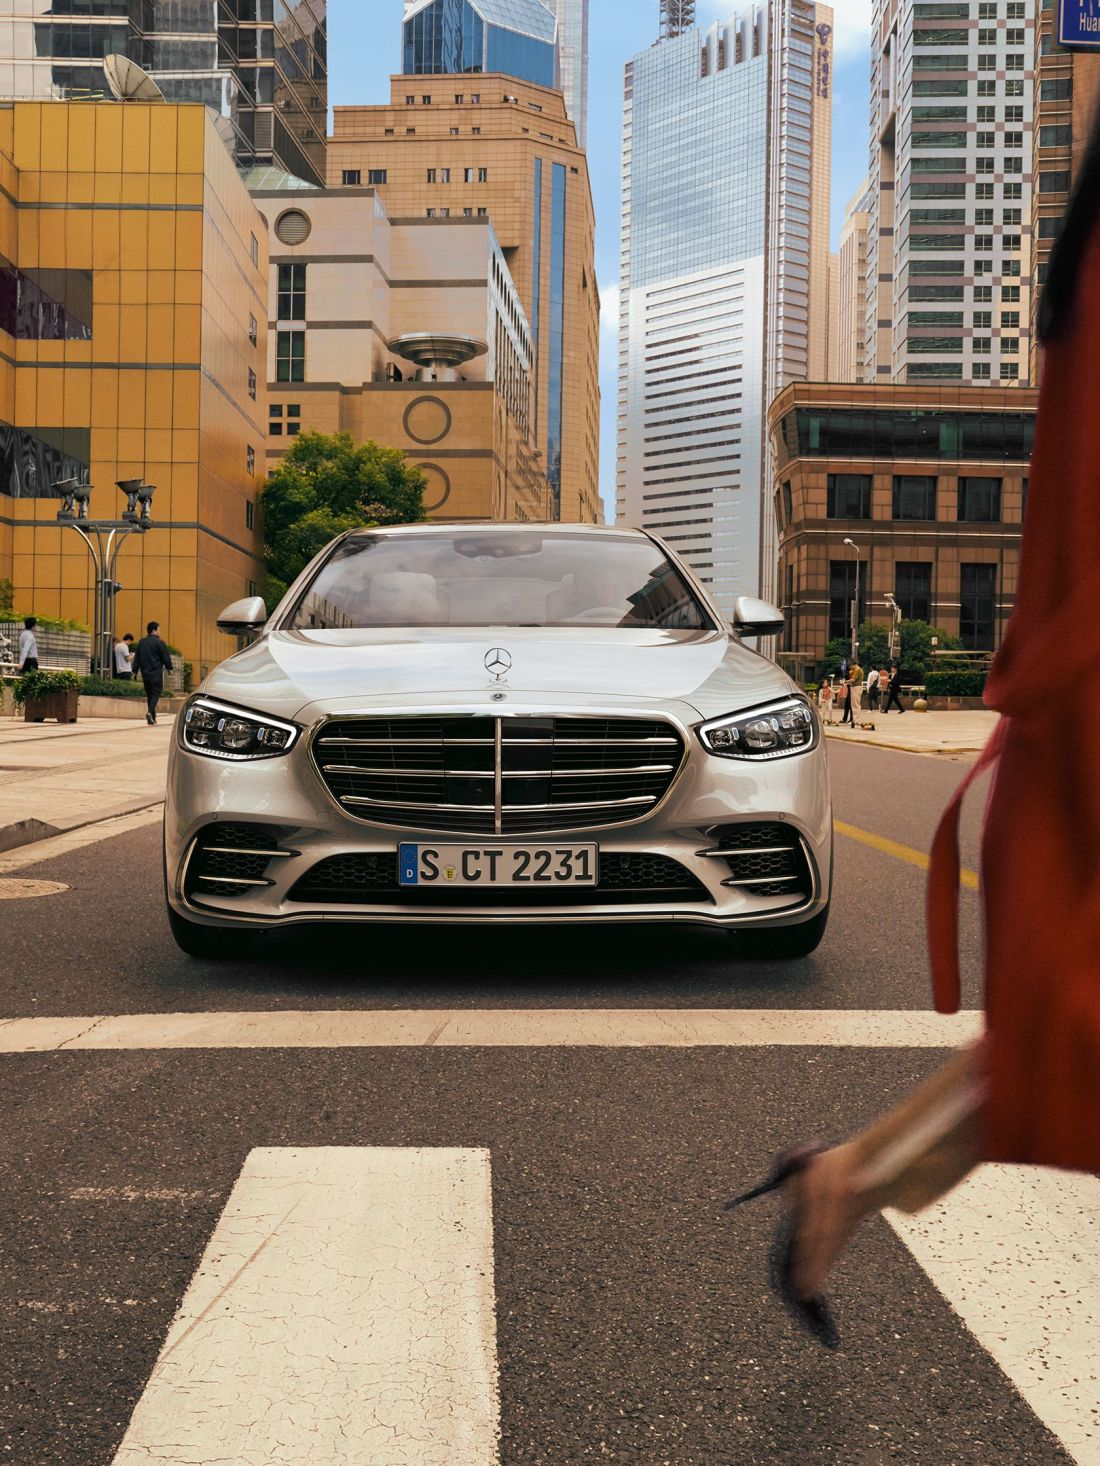 The new 2021 Mercedes-Benz S-Class Saloon (WV 223): The S-Class stands at a pedestrian crossing that is being crossed by two pedestrians.